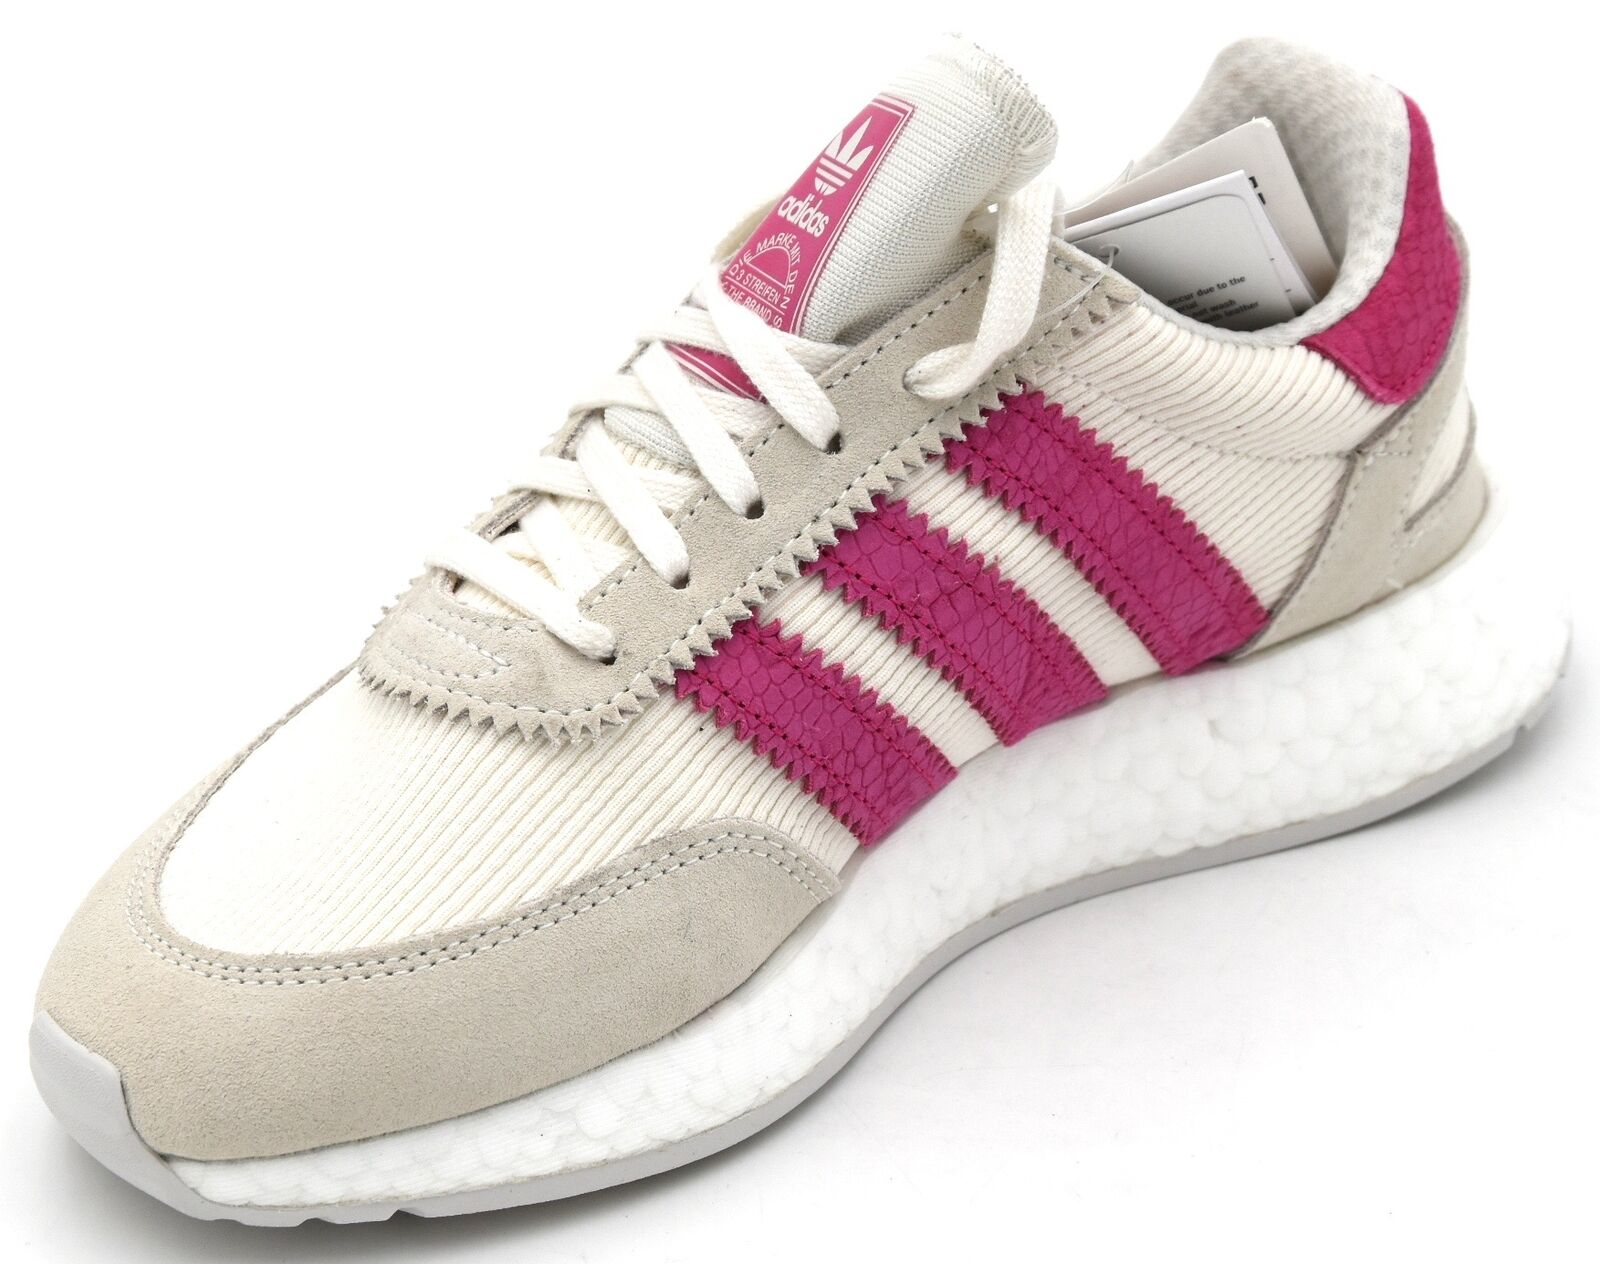 ADIDAS WOMAN SNEAKER SHOES CASUAL FREE TIME CODE I-5923 W D96618